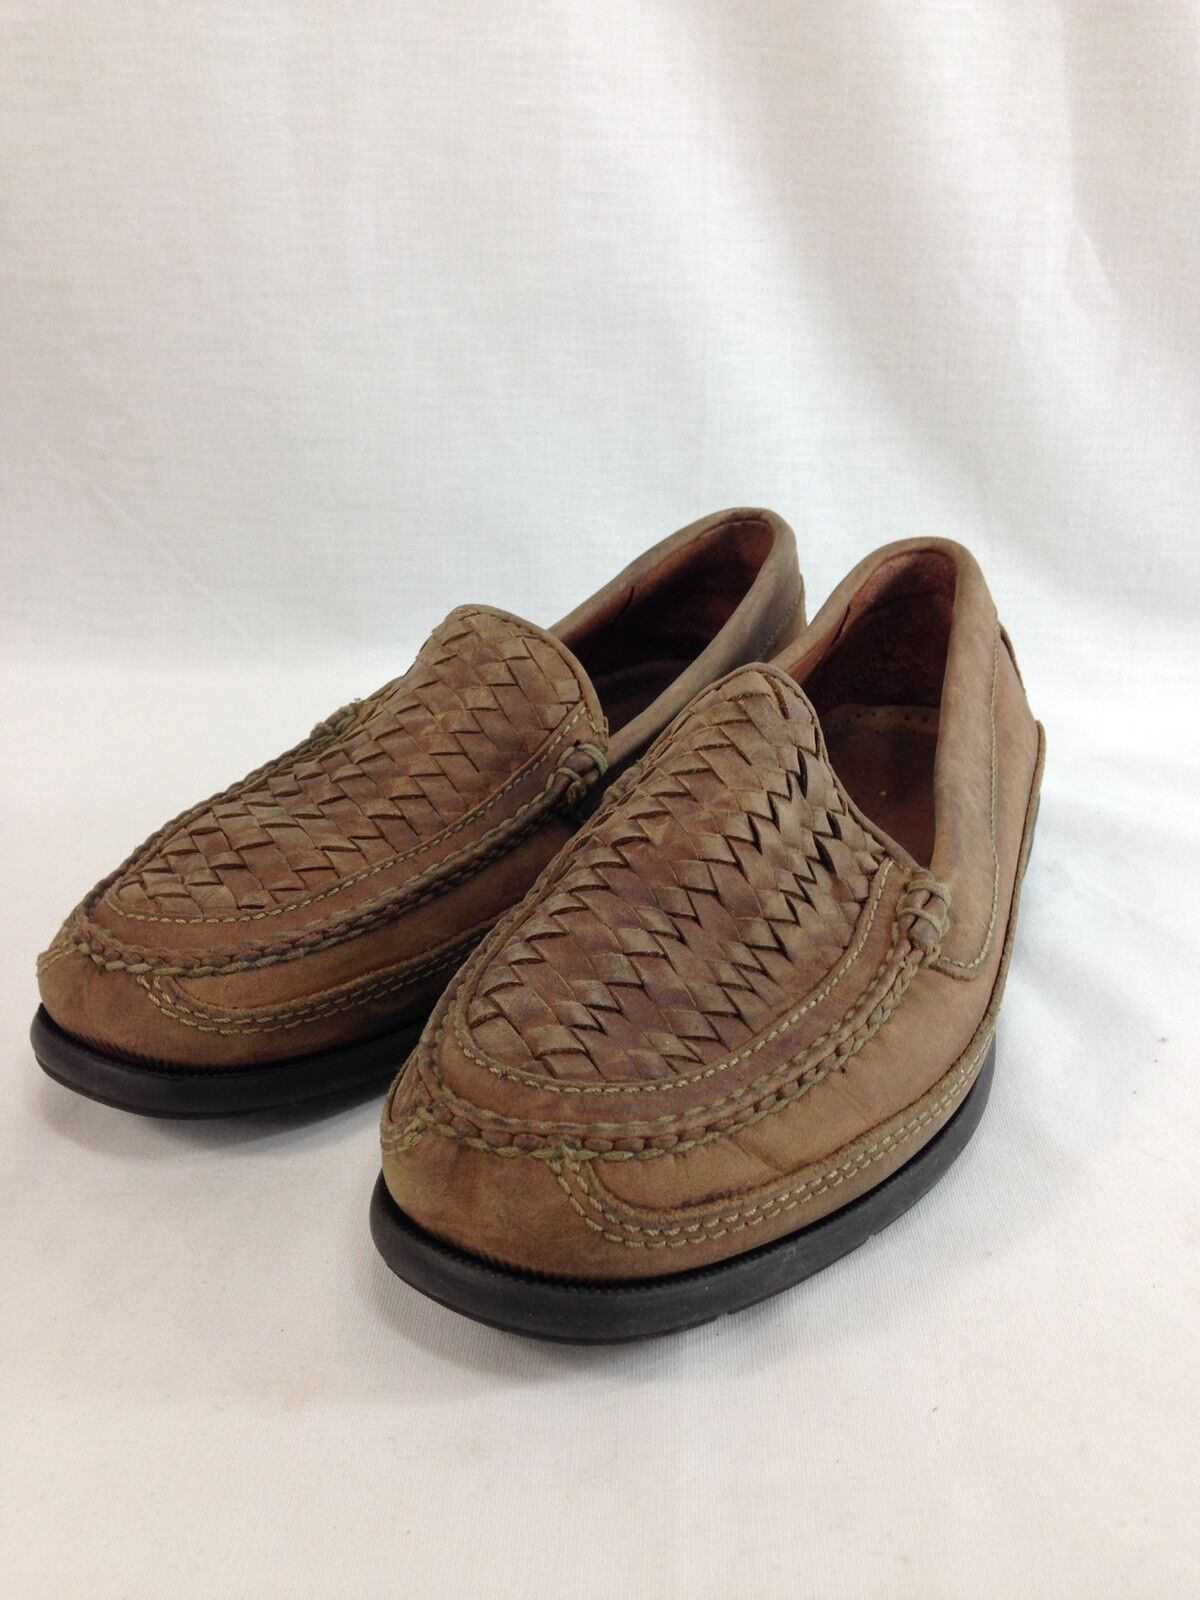 Johnston & Murphy Passport shoes Loafers Wicker Woven Mens 8 Brown Leather Suede